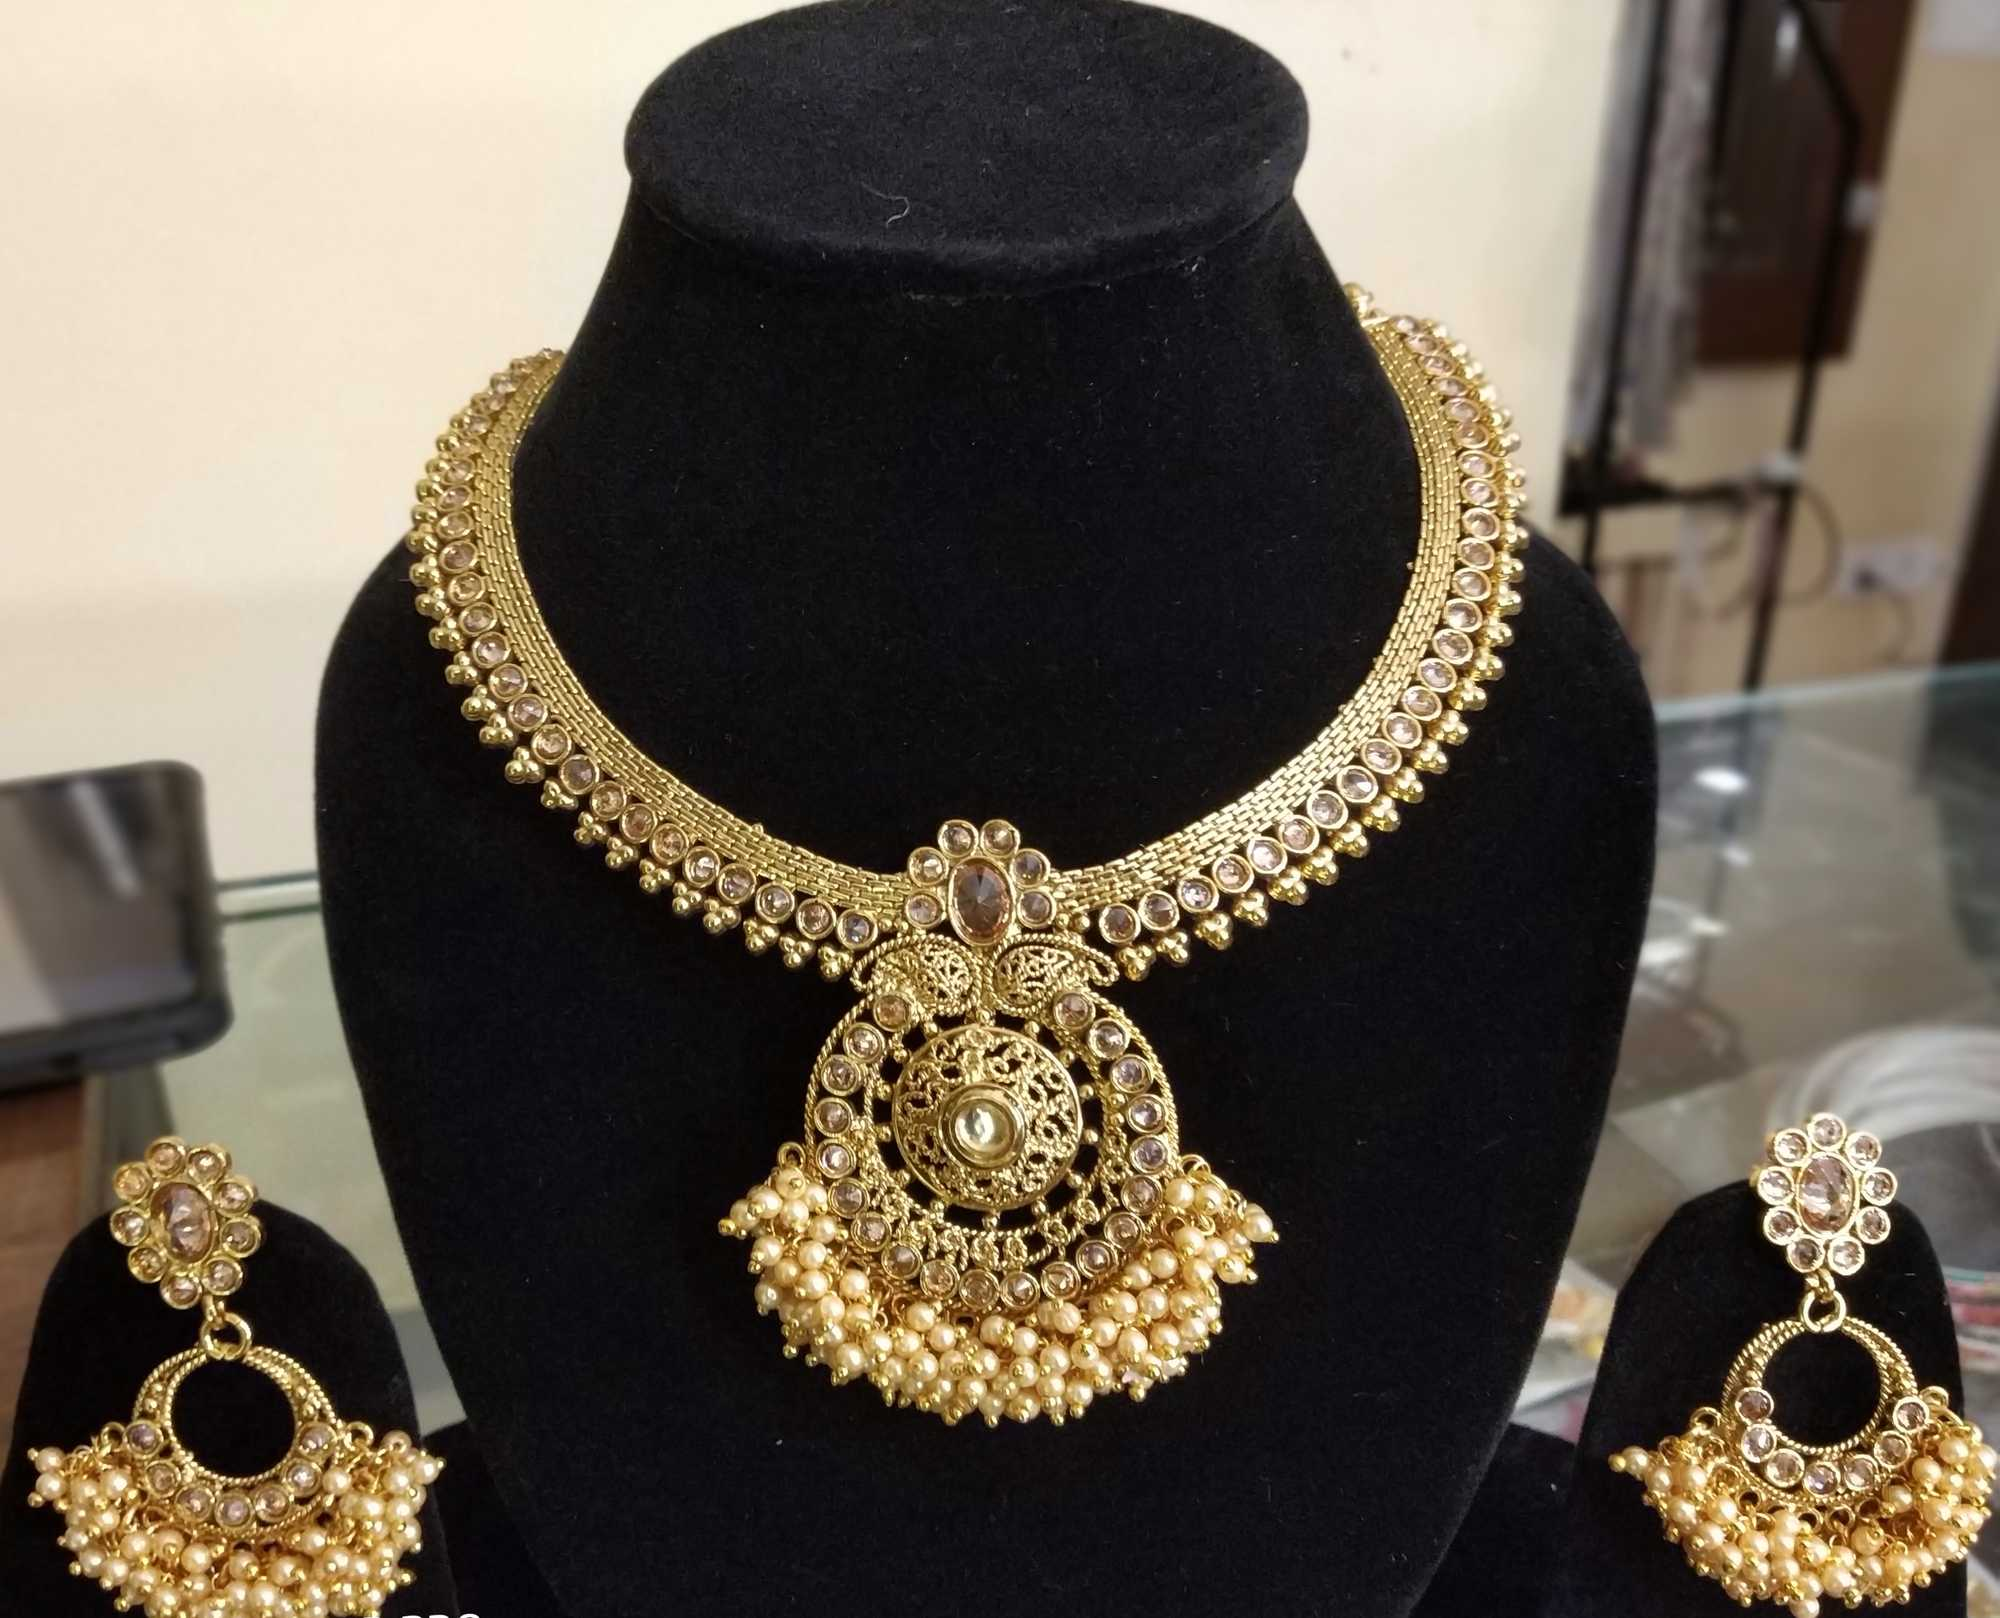 ace487279a1 Top 10 Imitation Jewellery Showrooms in Chandigarh Sector 22 - Best ...